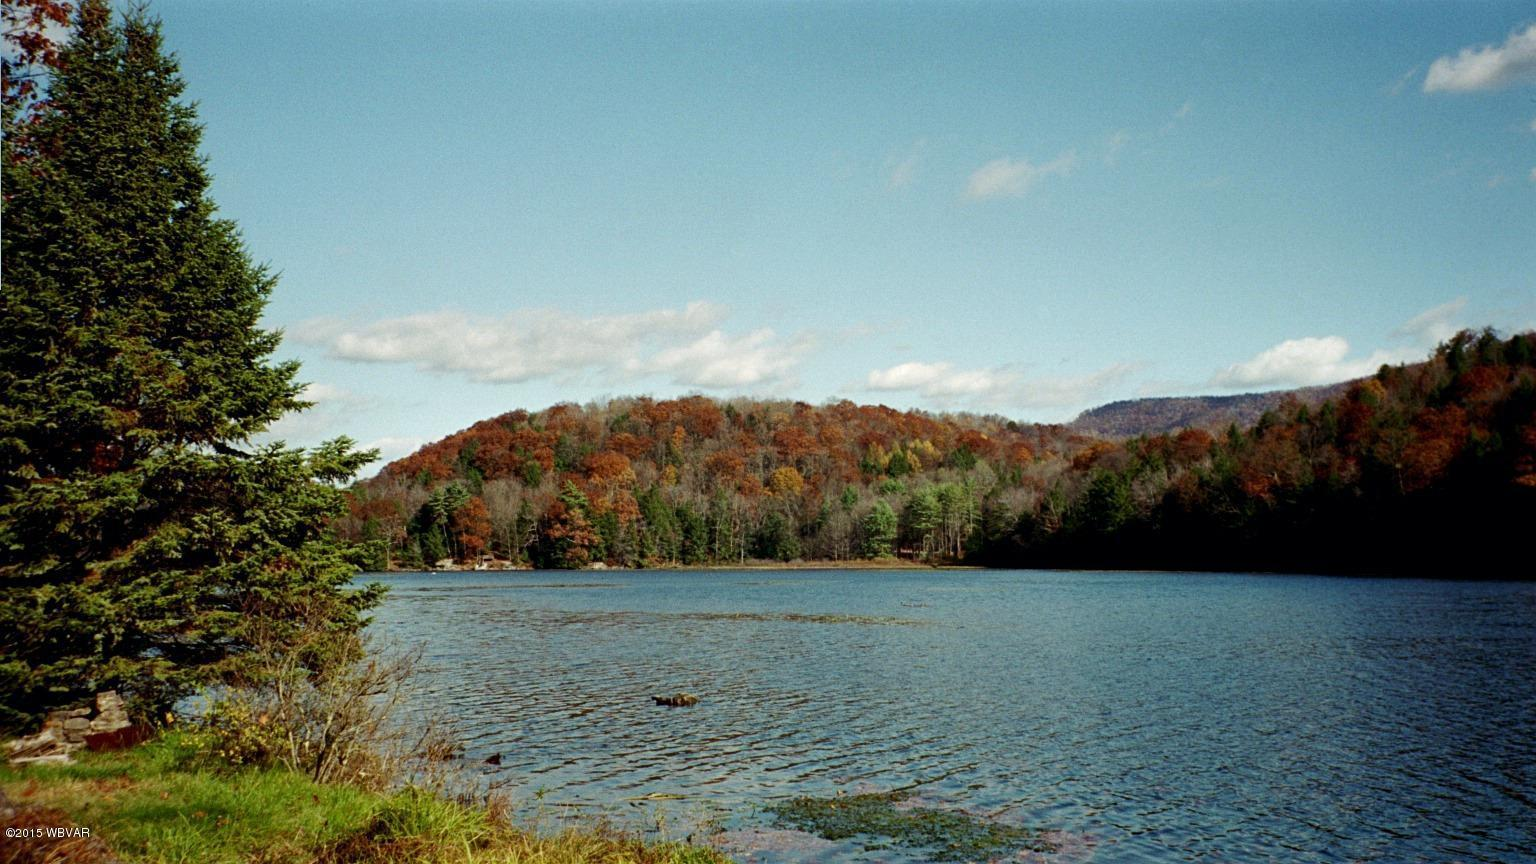 LOT 86 LAKEVIEW DRIVE, Muncy Valley, PA 17758, ,Land,For sale,LAKEVIEW,WB-76026